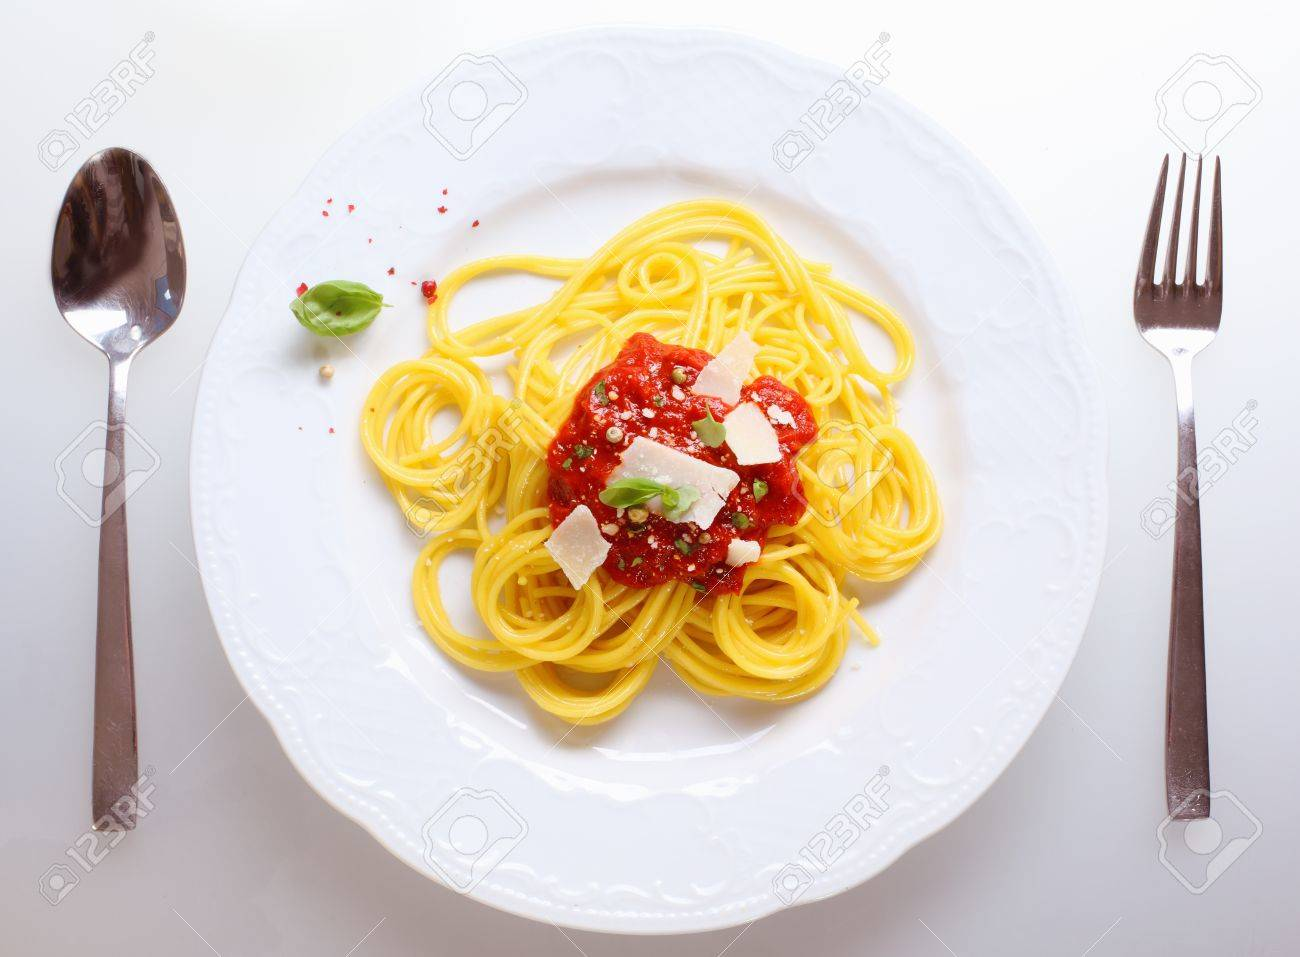 Plate of freshly prepared spaghetti bolognaise with a tomato sauce and cheese ready to be served. Stock Photo - 12300927